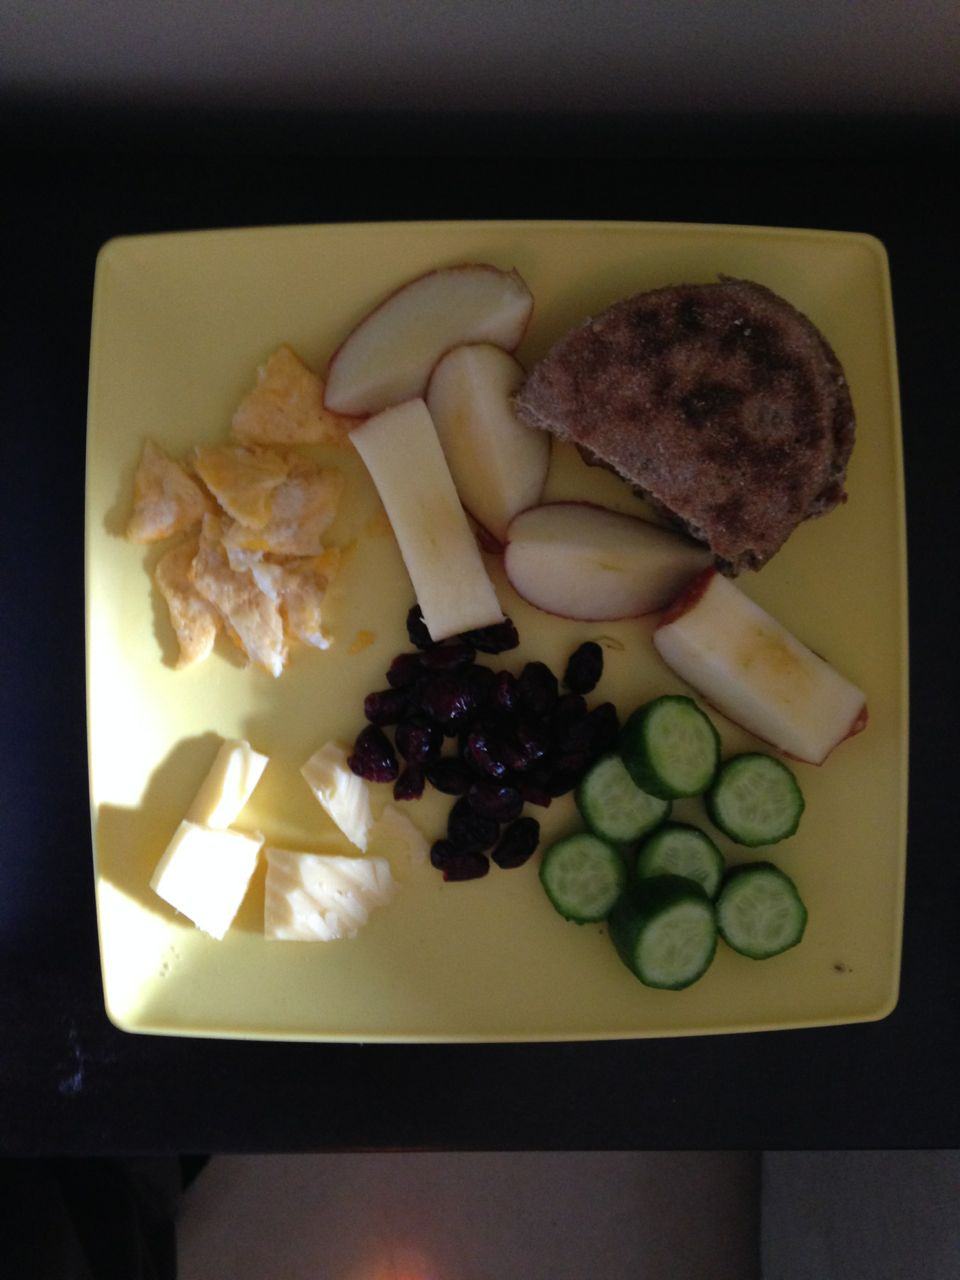 The Snack Plate Beautiful Feet The Blog Version